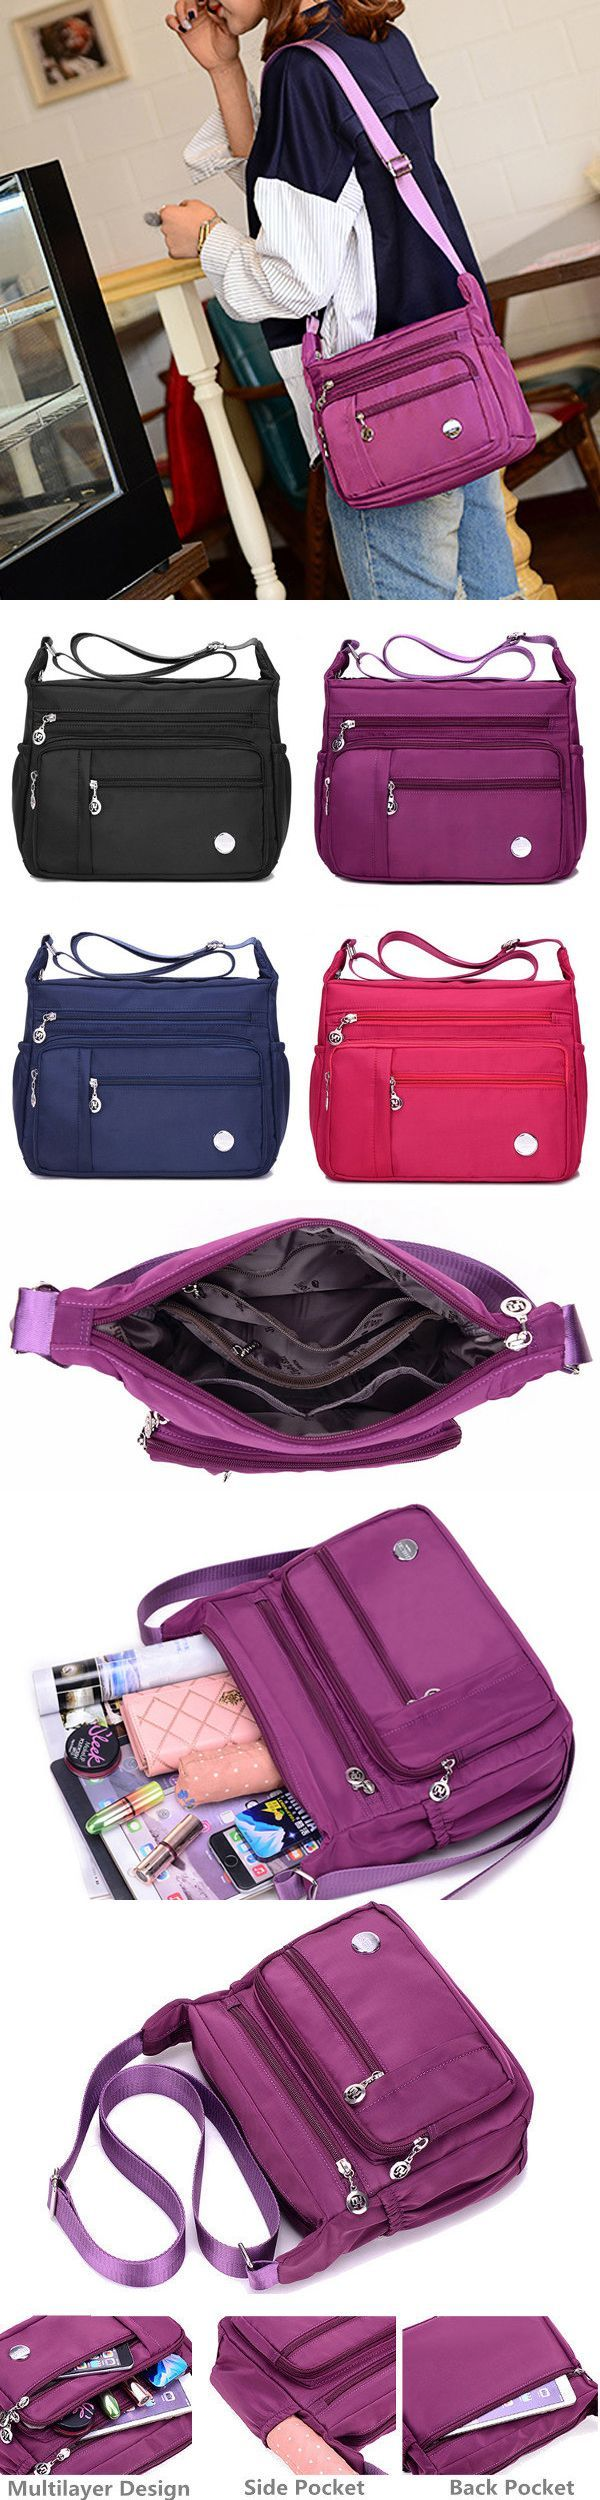 Women Waterproof Light Shoulder Bags Outdoor Sports Crossbody Bags Shoulder Bags.Big Deals Every Day.Shop Today!